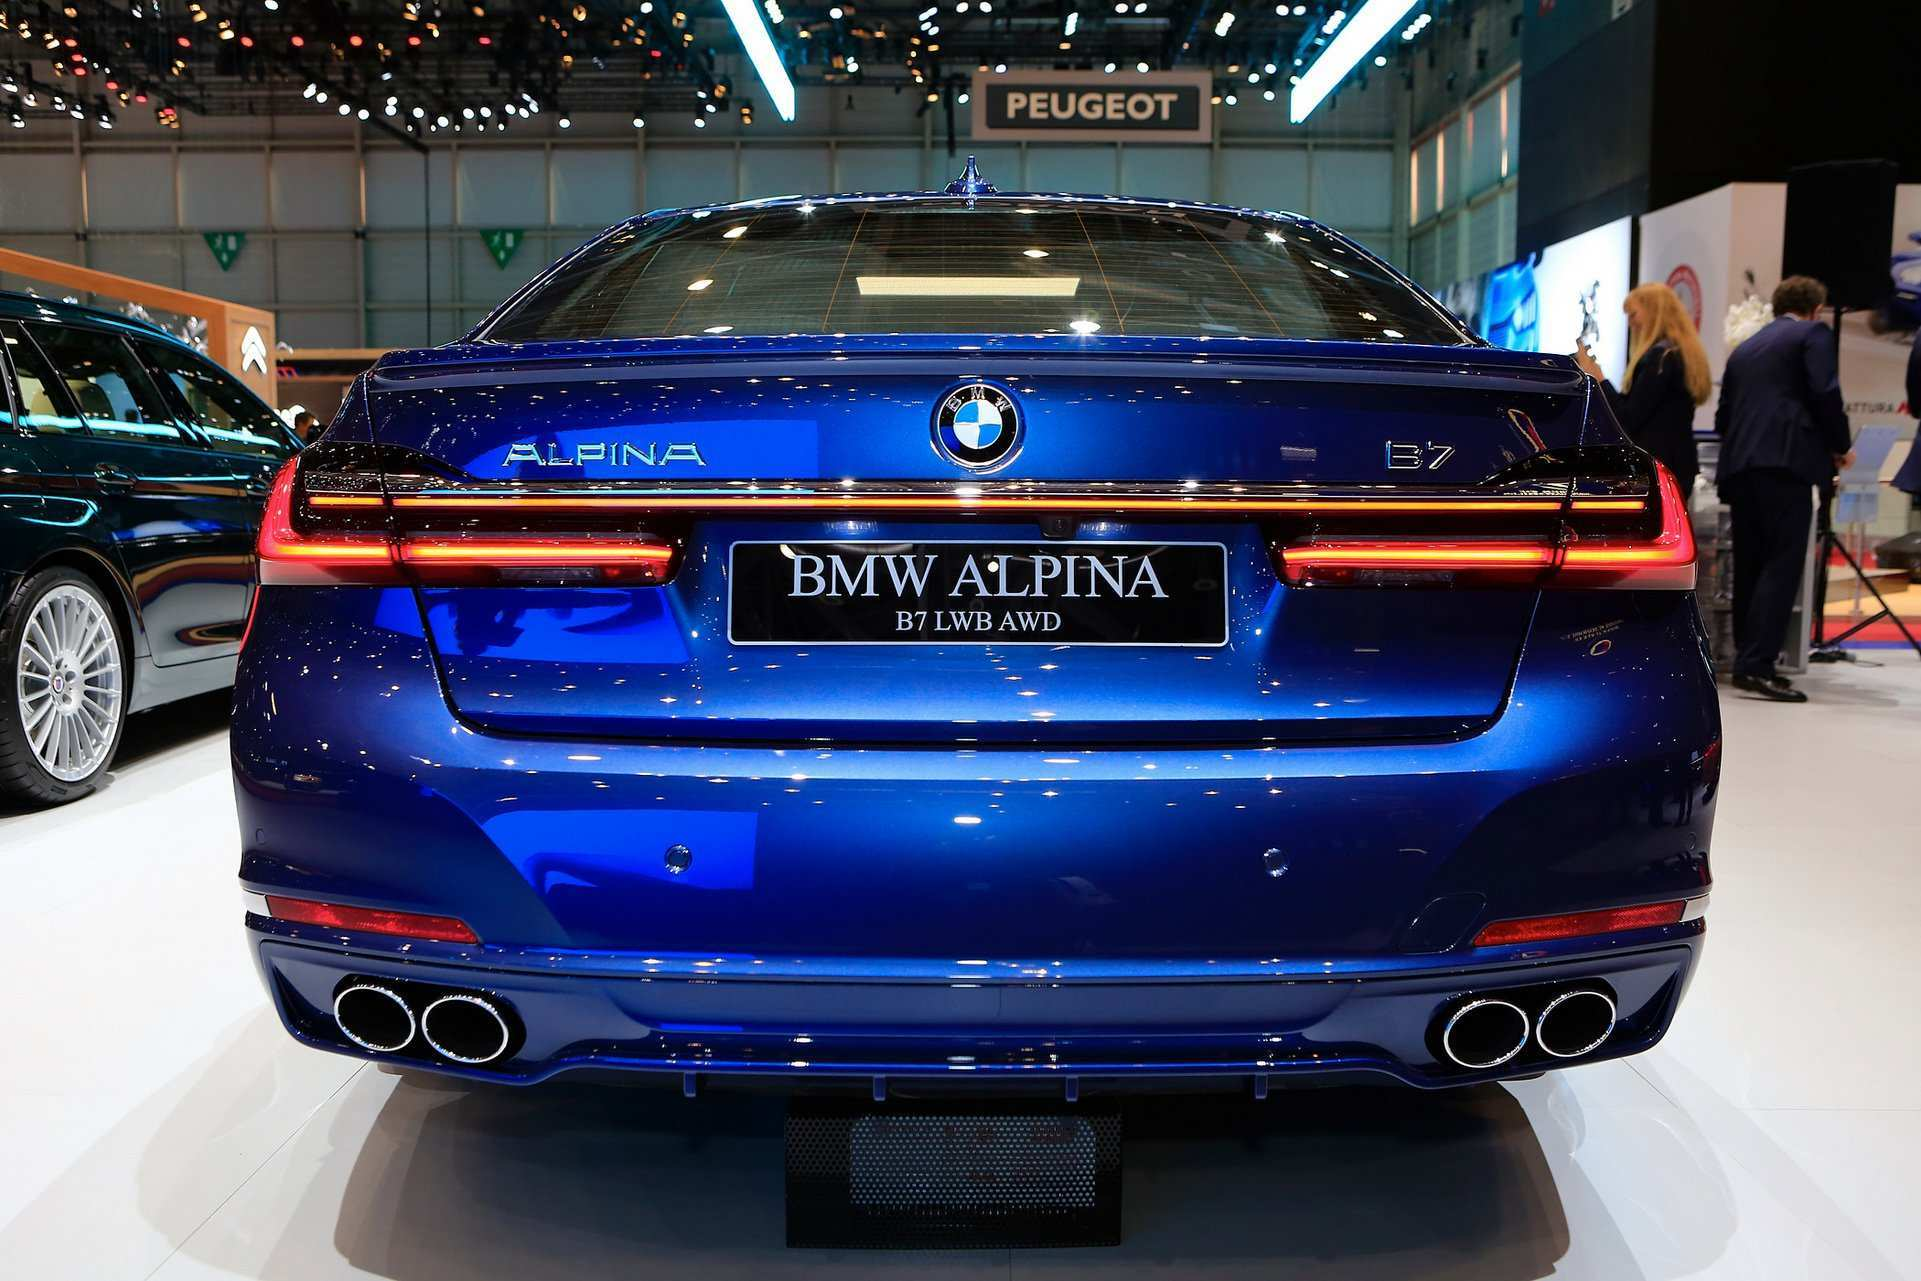 51 Concept of BMW B7 Alpina 2020 Price Interior with BMW B7 Alpina 2020 Price